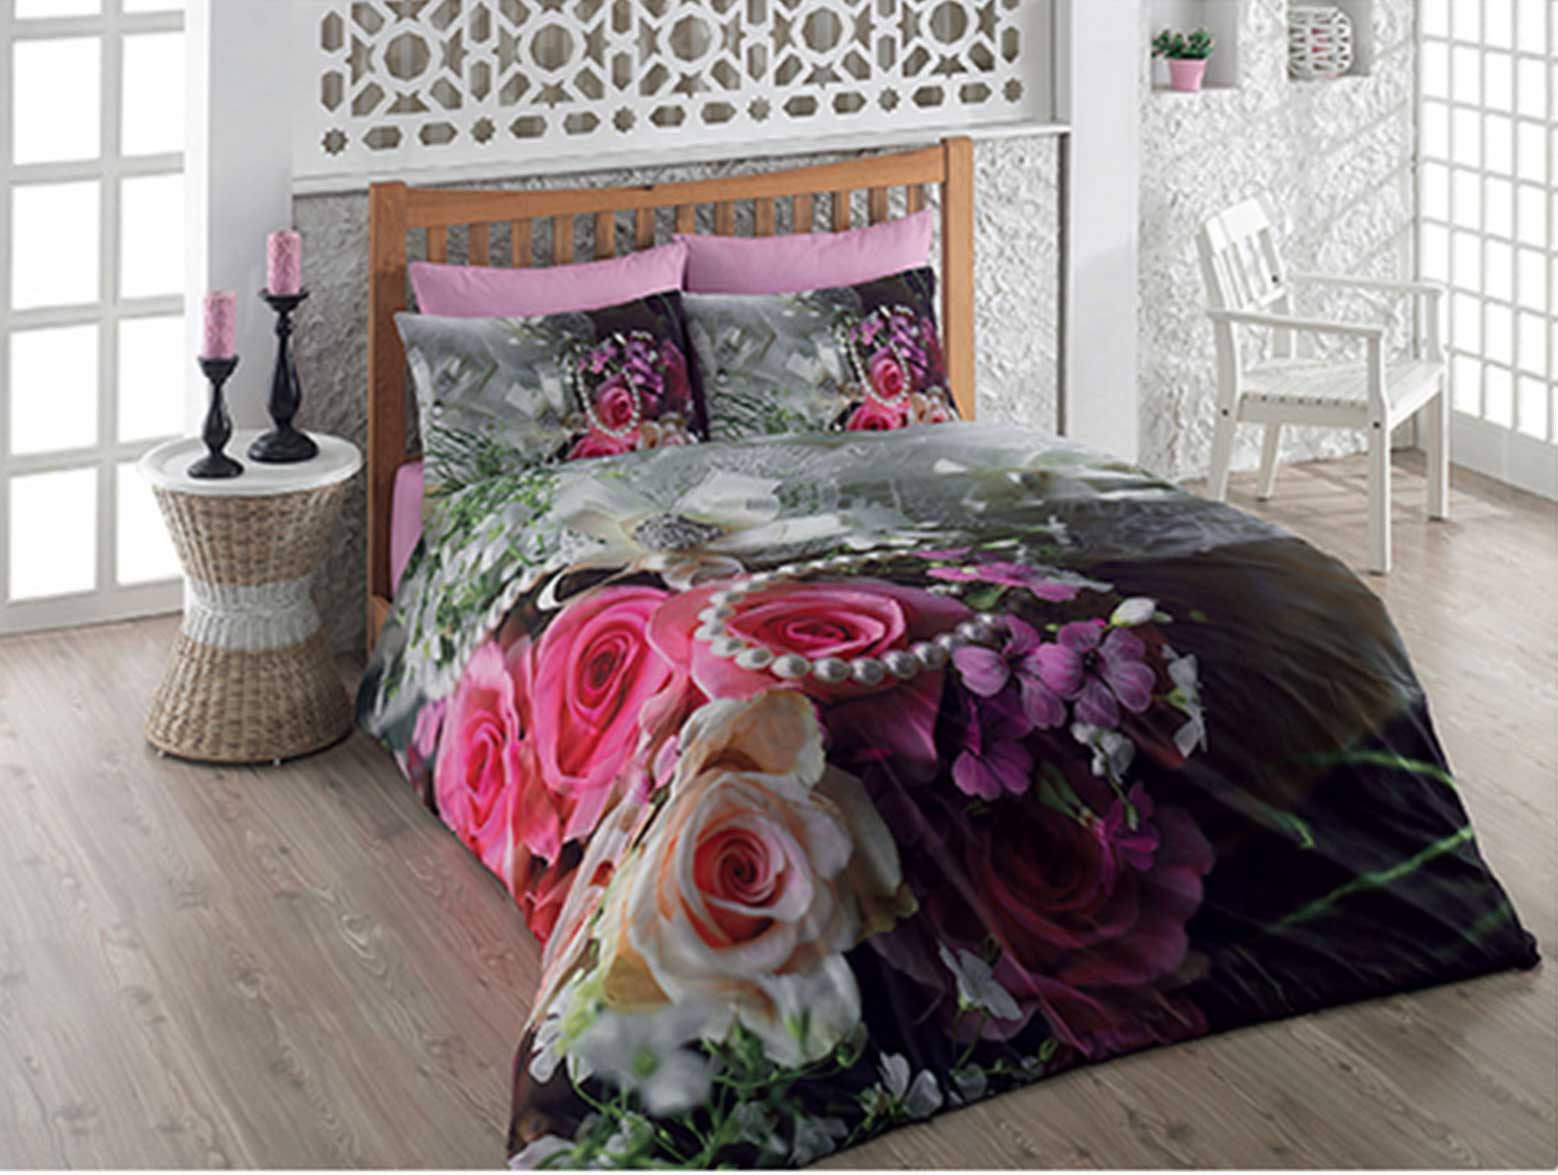 6 tlg 3d bettw sche bettgarnitur satin 100 baumwolle kissen 200x220 cm rose neu ebay. Black Bedroom Furniture Sets. Home Design Ideas